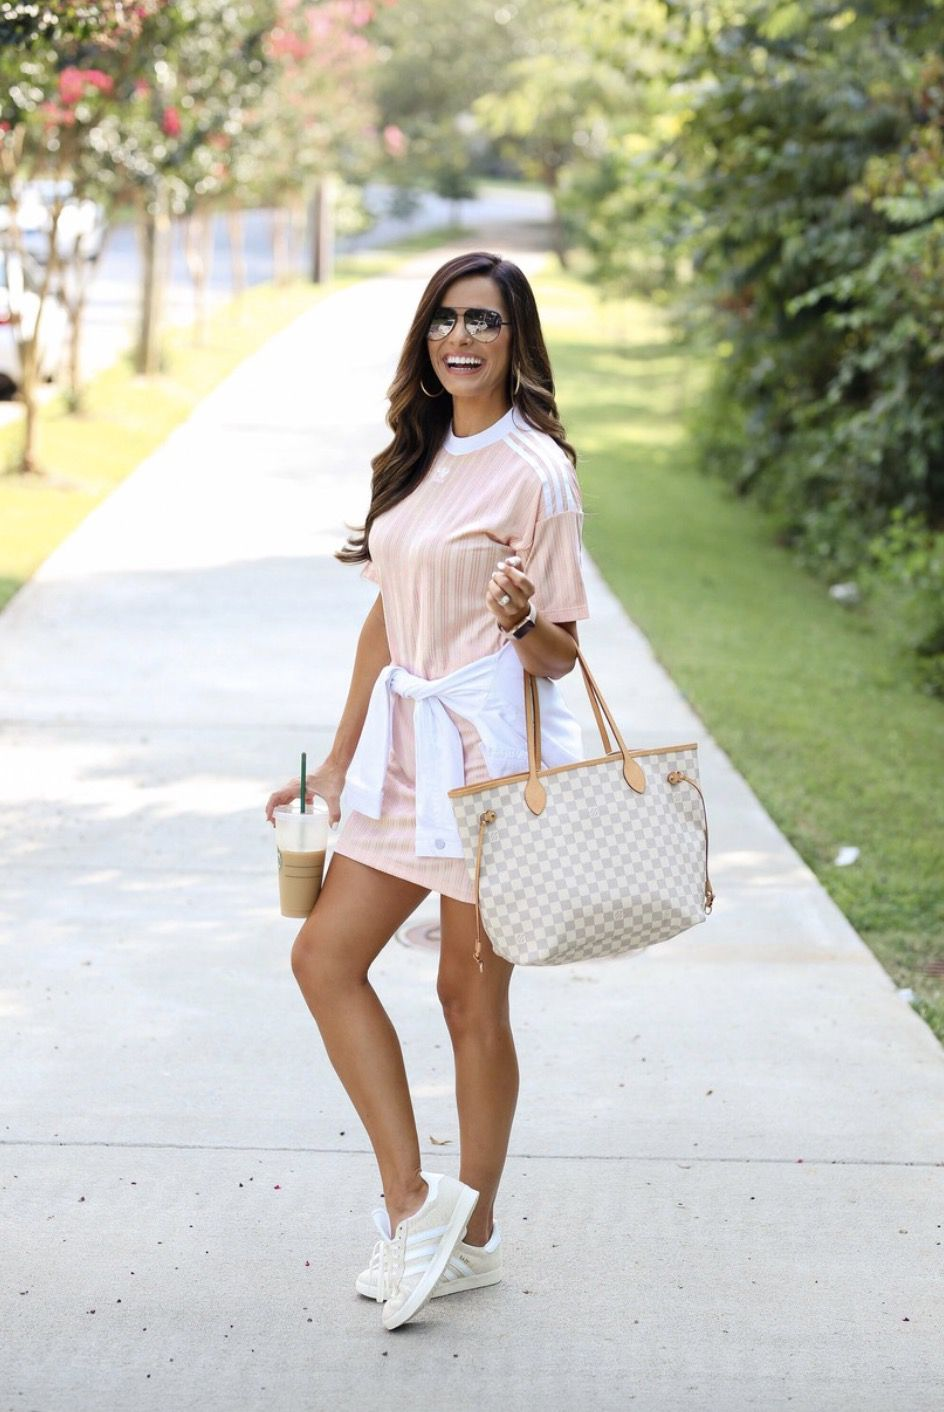 11+ Surprisingly Cute Sporty Outfits To Try: All athleisure lovers ahoy! Check out these sporty chic outfits, casual outfits and stylish gym outfits to get inspired for the new season. | Pink T-Shirt dress with nude sneakers and LV Neverfull bag - perfect for airport outfits. Image ©MumuAndMacaroons #sportyoutfits #casualoutfits #athleisure #airportoutfits